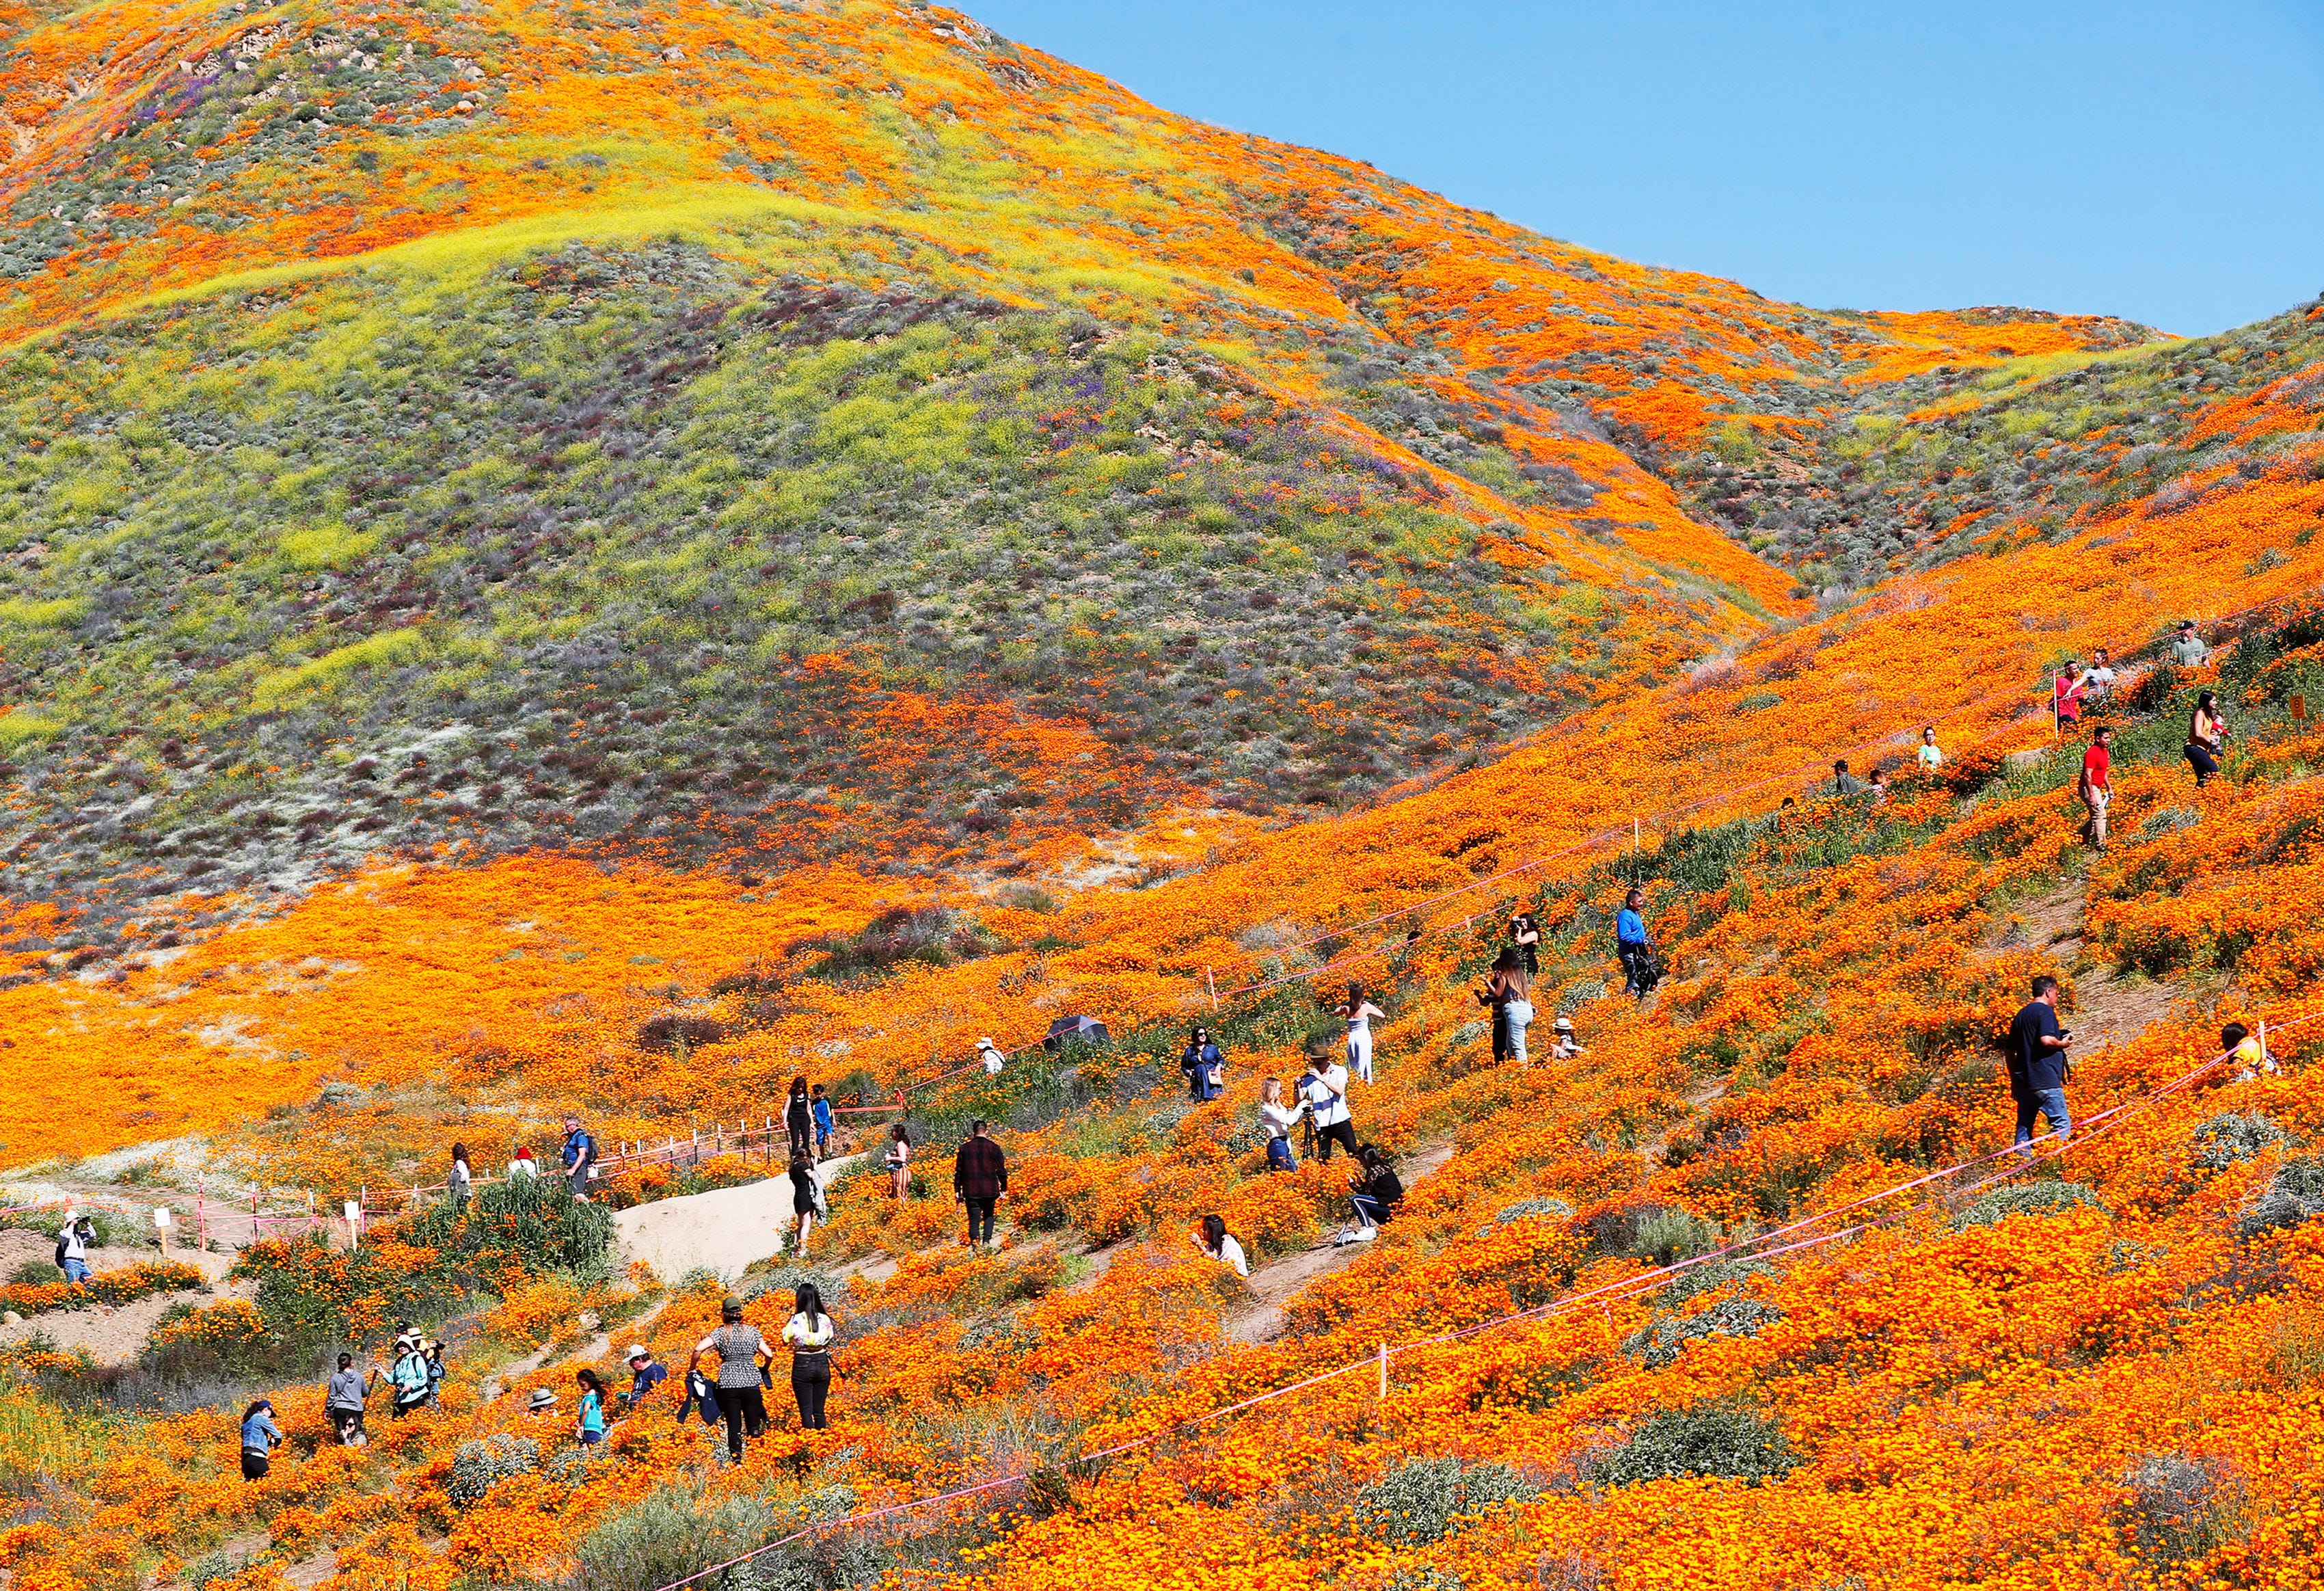 Tourists flood the poppy fields at Walker Canyon in Lake Elsinore, Calif. Sunday March 17, 2019. After massive crowds flooded the small community, city officials have shut down Walker Canyon to the public. No shuttles or visitors will be allowed.